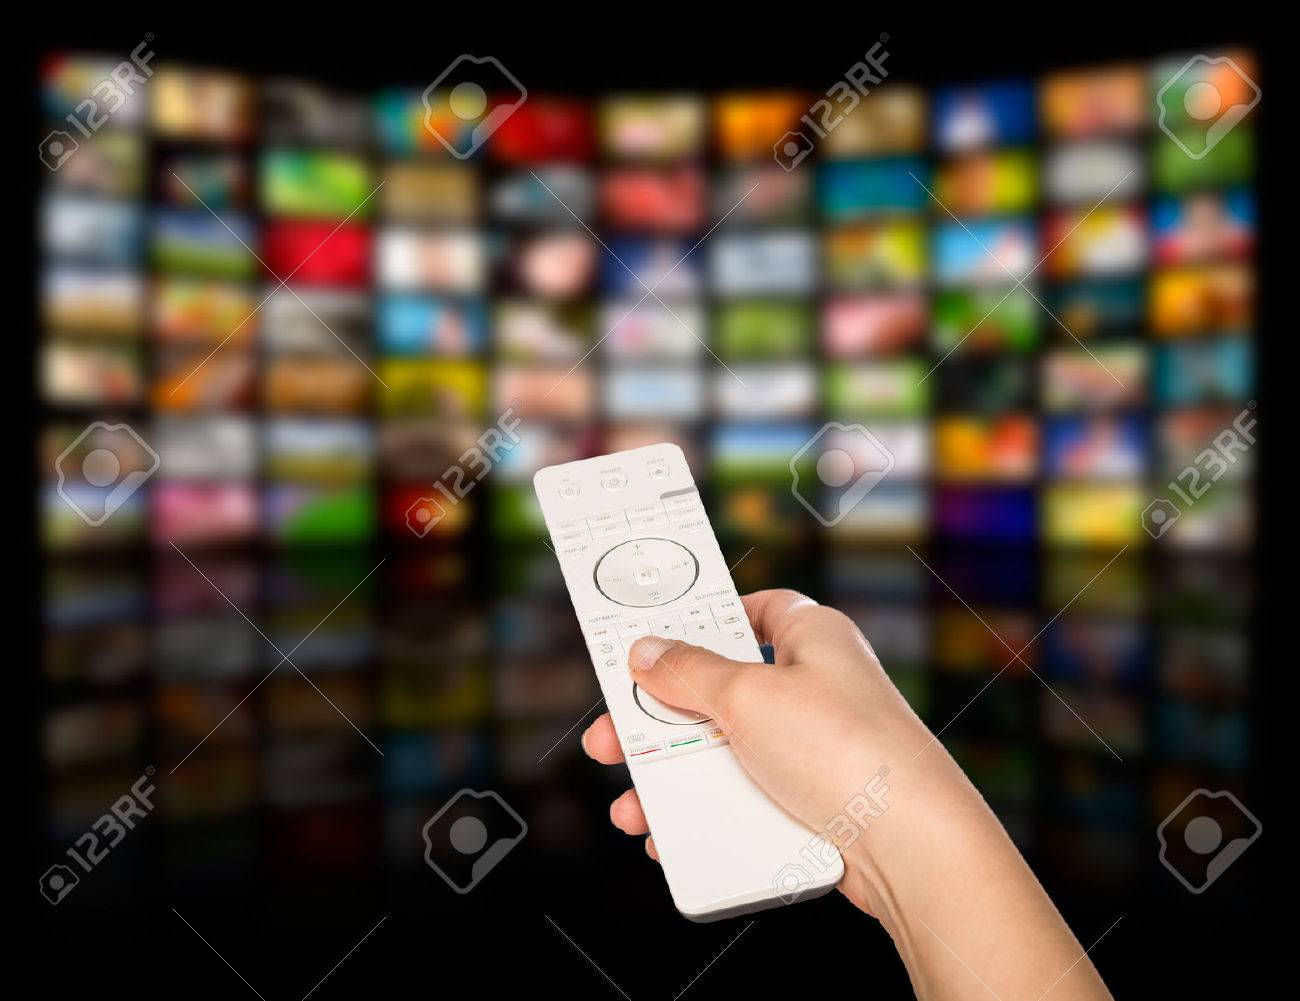 LCD TV panels. Television production technology concept. Remote control. Stock Photo - 43398572